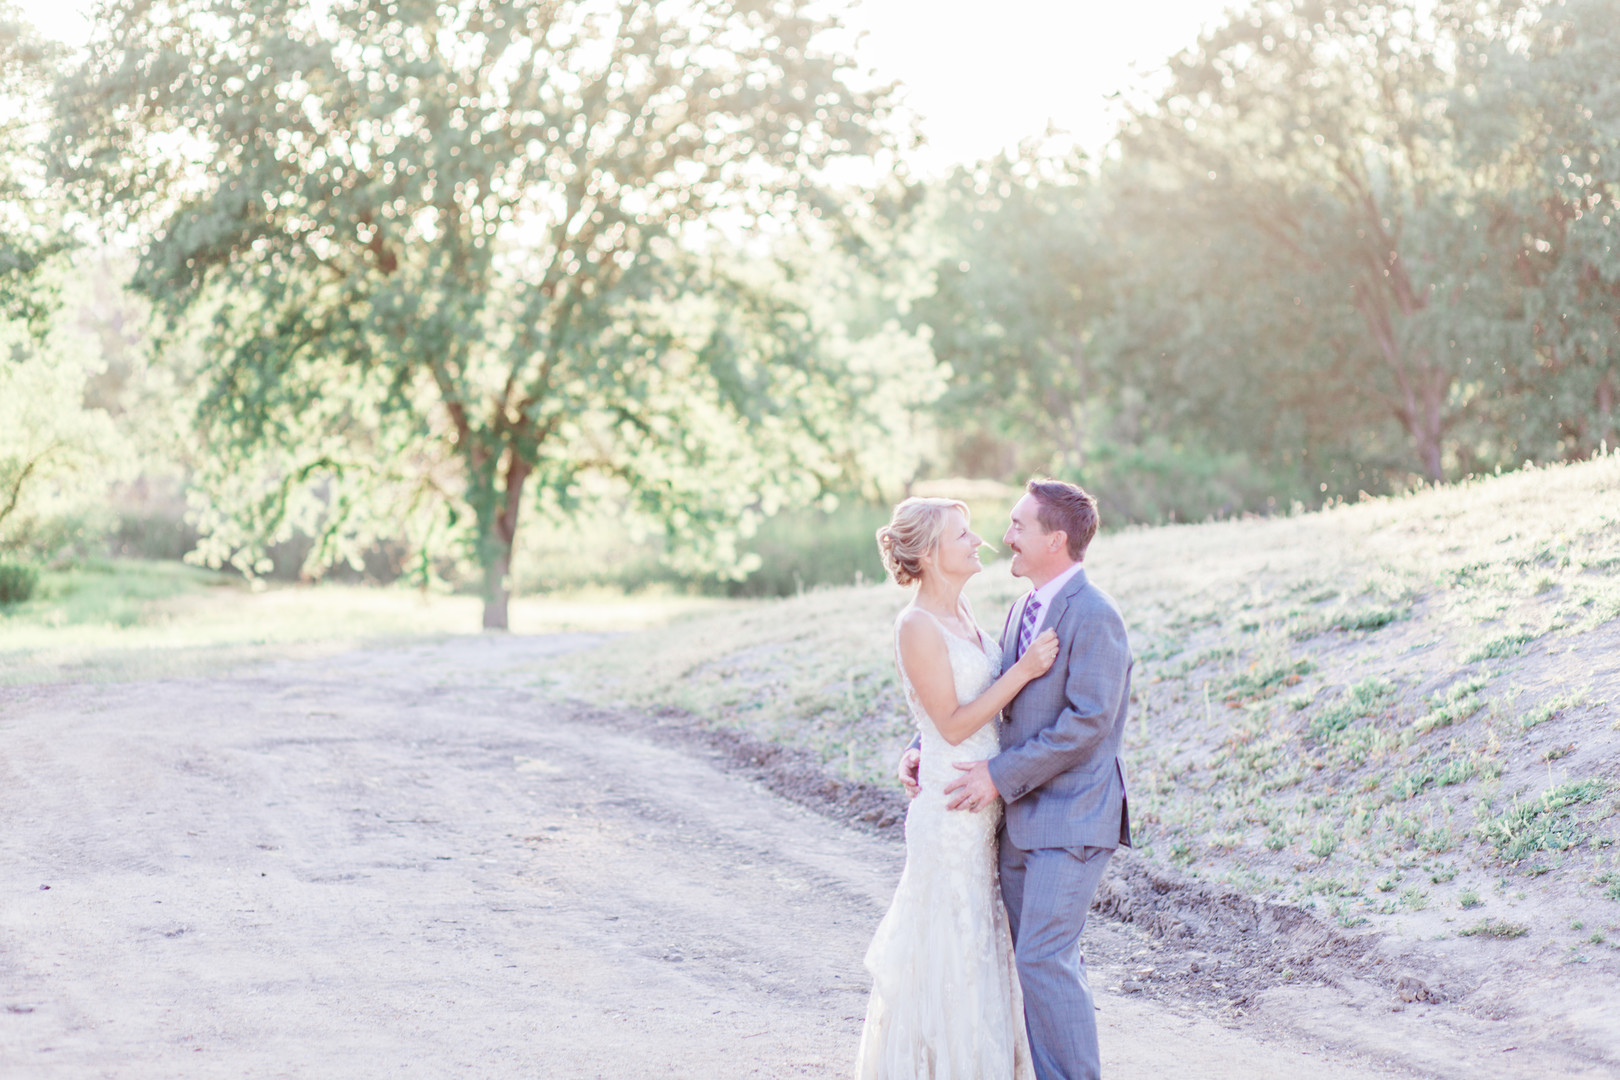 www.santabarbarawedding.com | Kay Mitchell | The Carriage House | Effortless Events | Bride and Groom